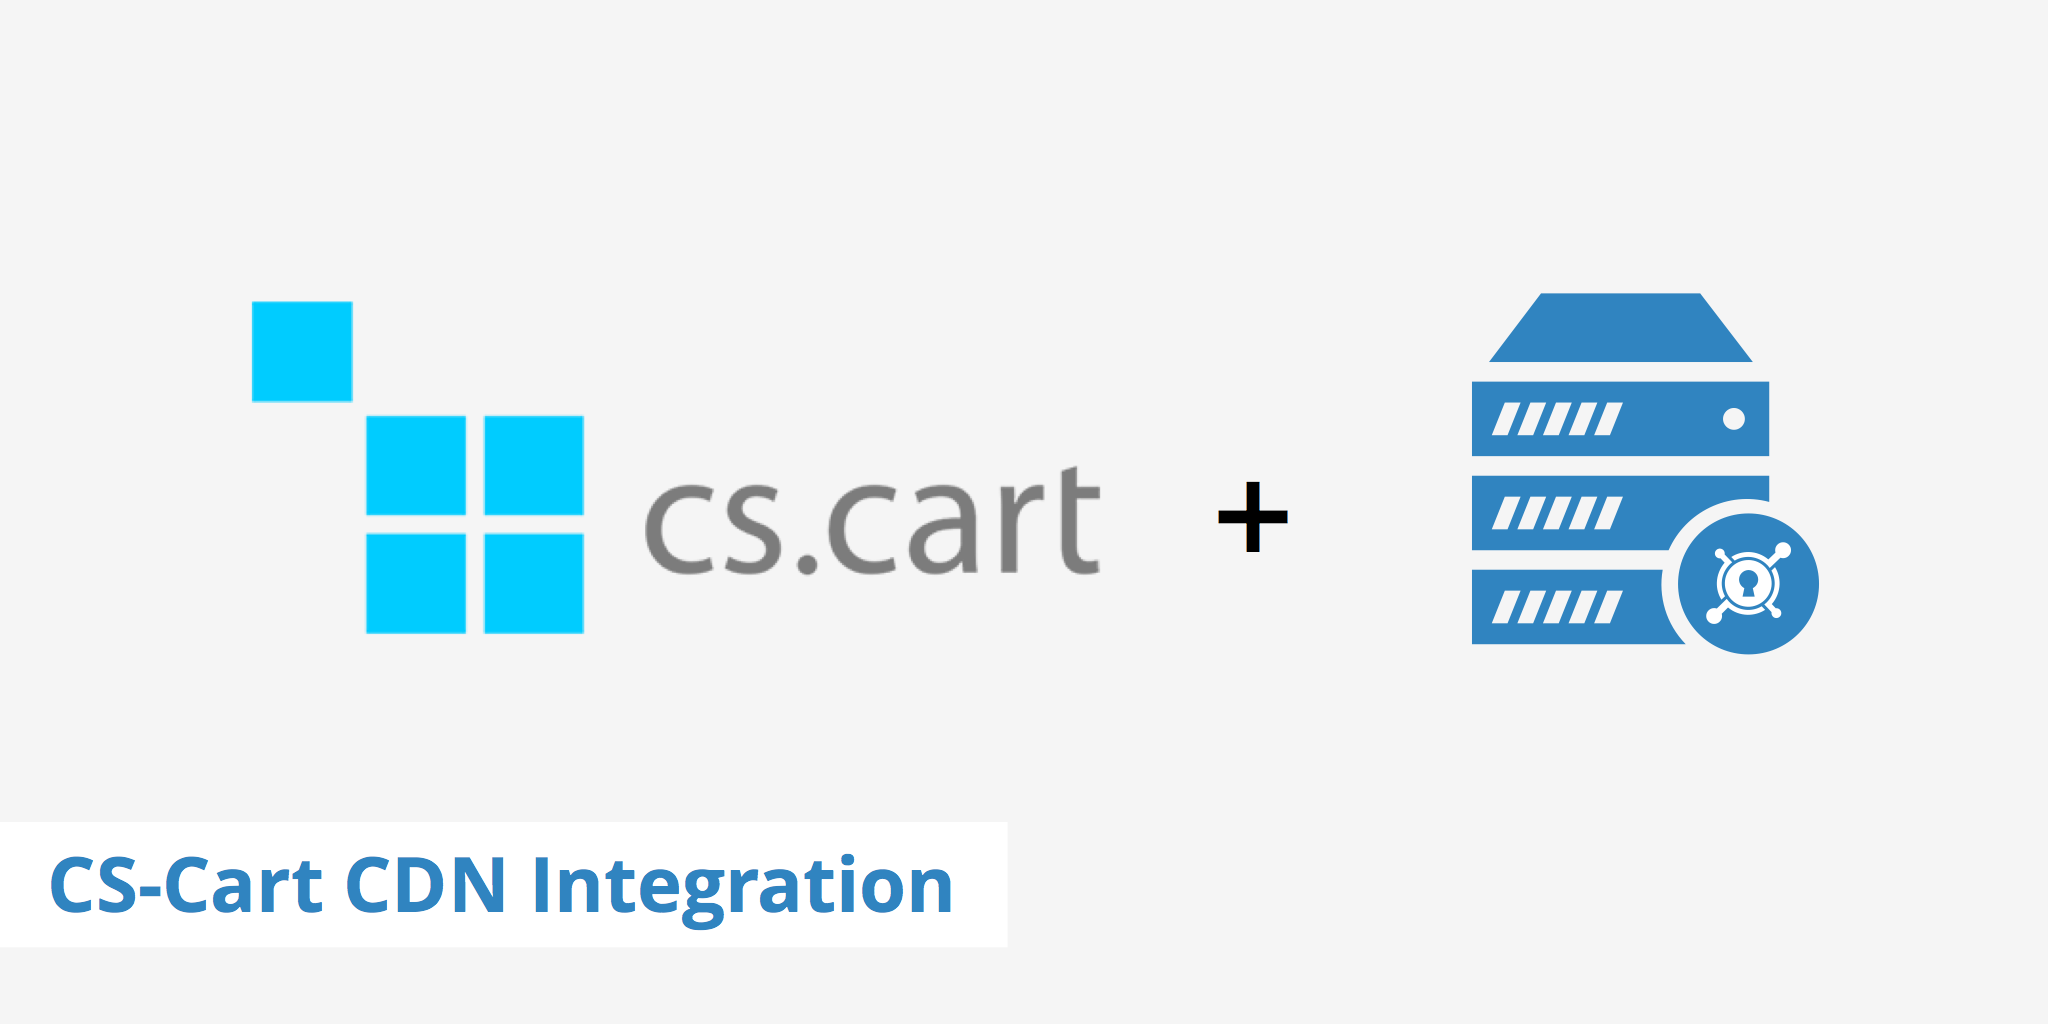 CS-Cart CDN Integration